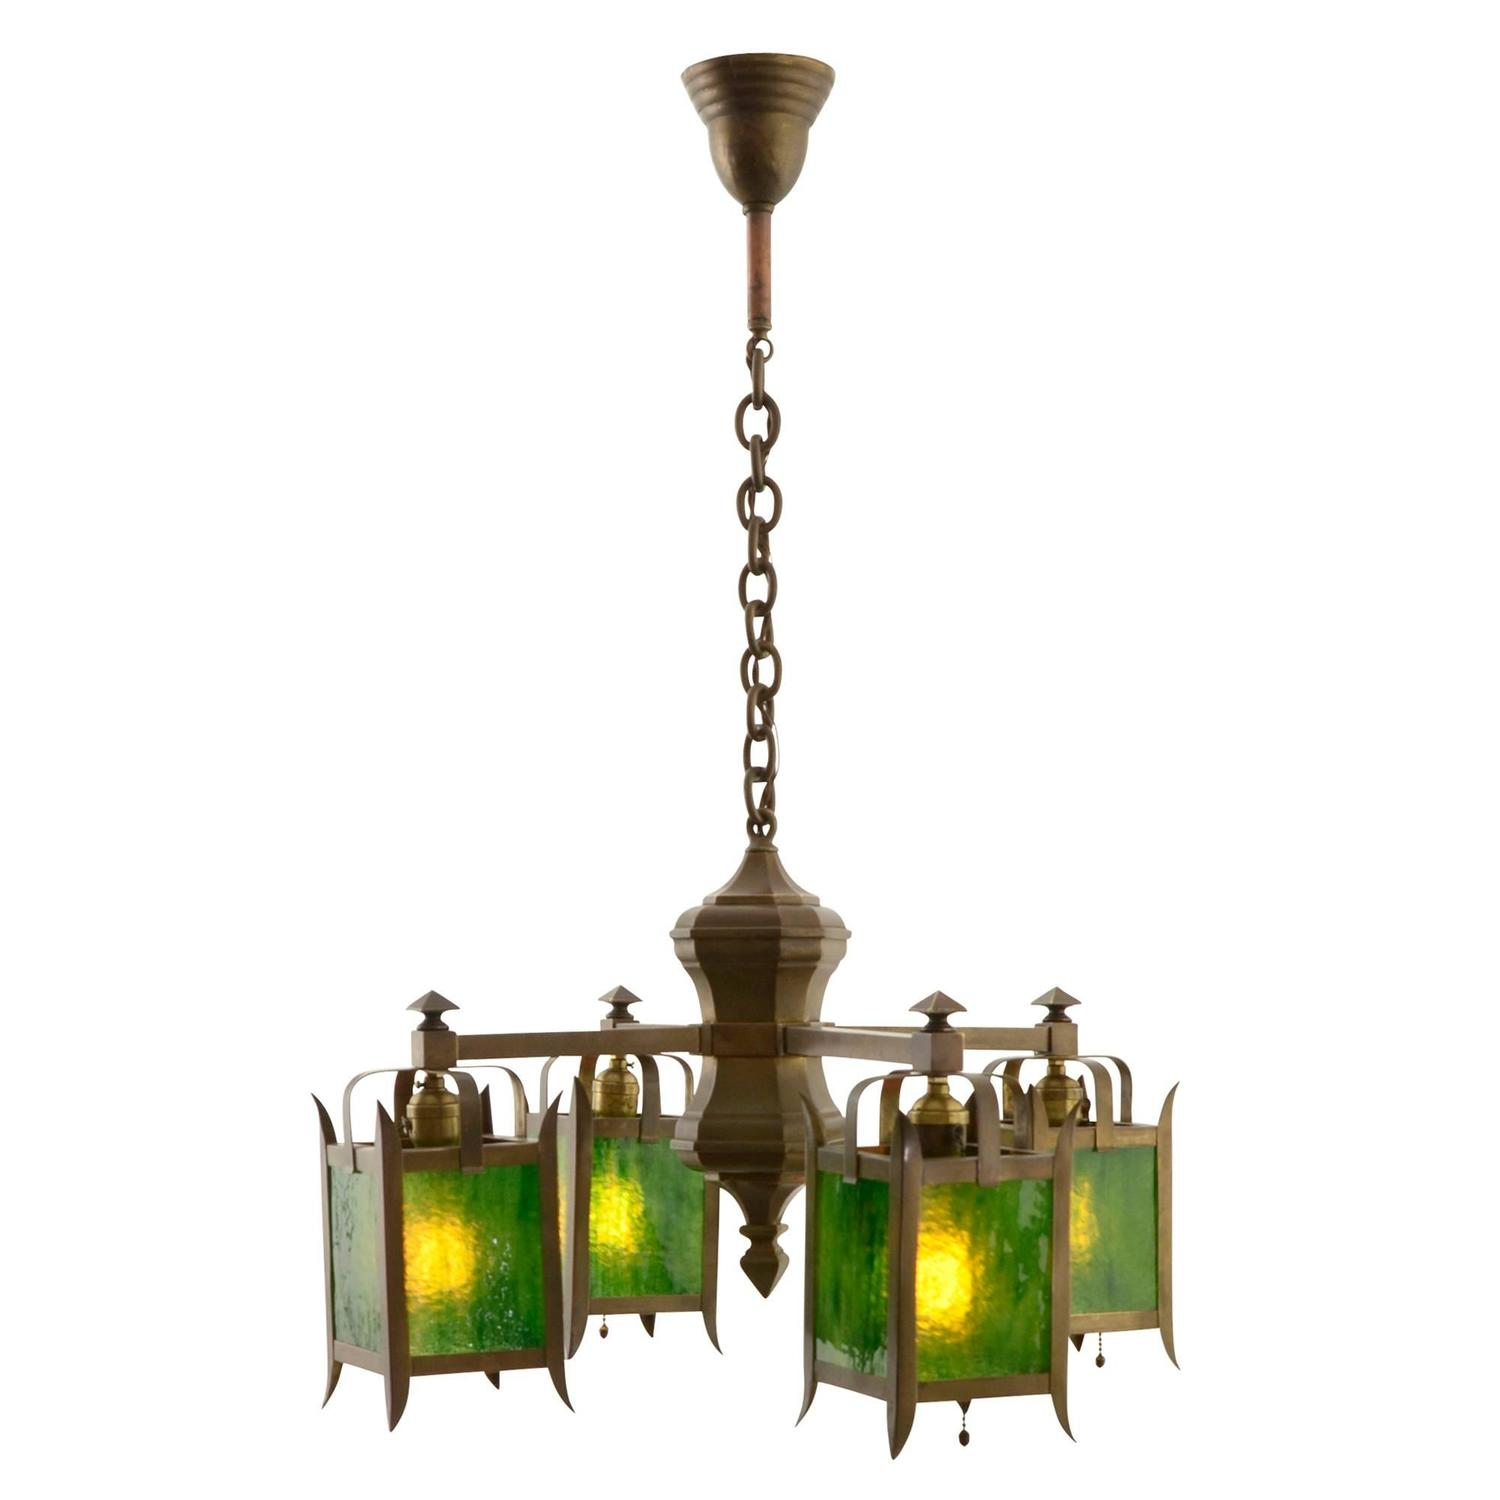 arts and crafts chandelier. Unusual Arts And Crafts Chandelier With Green Art Glass